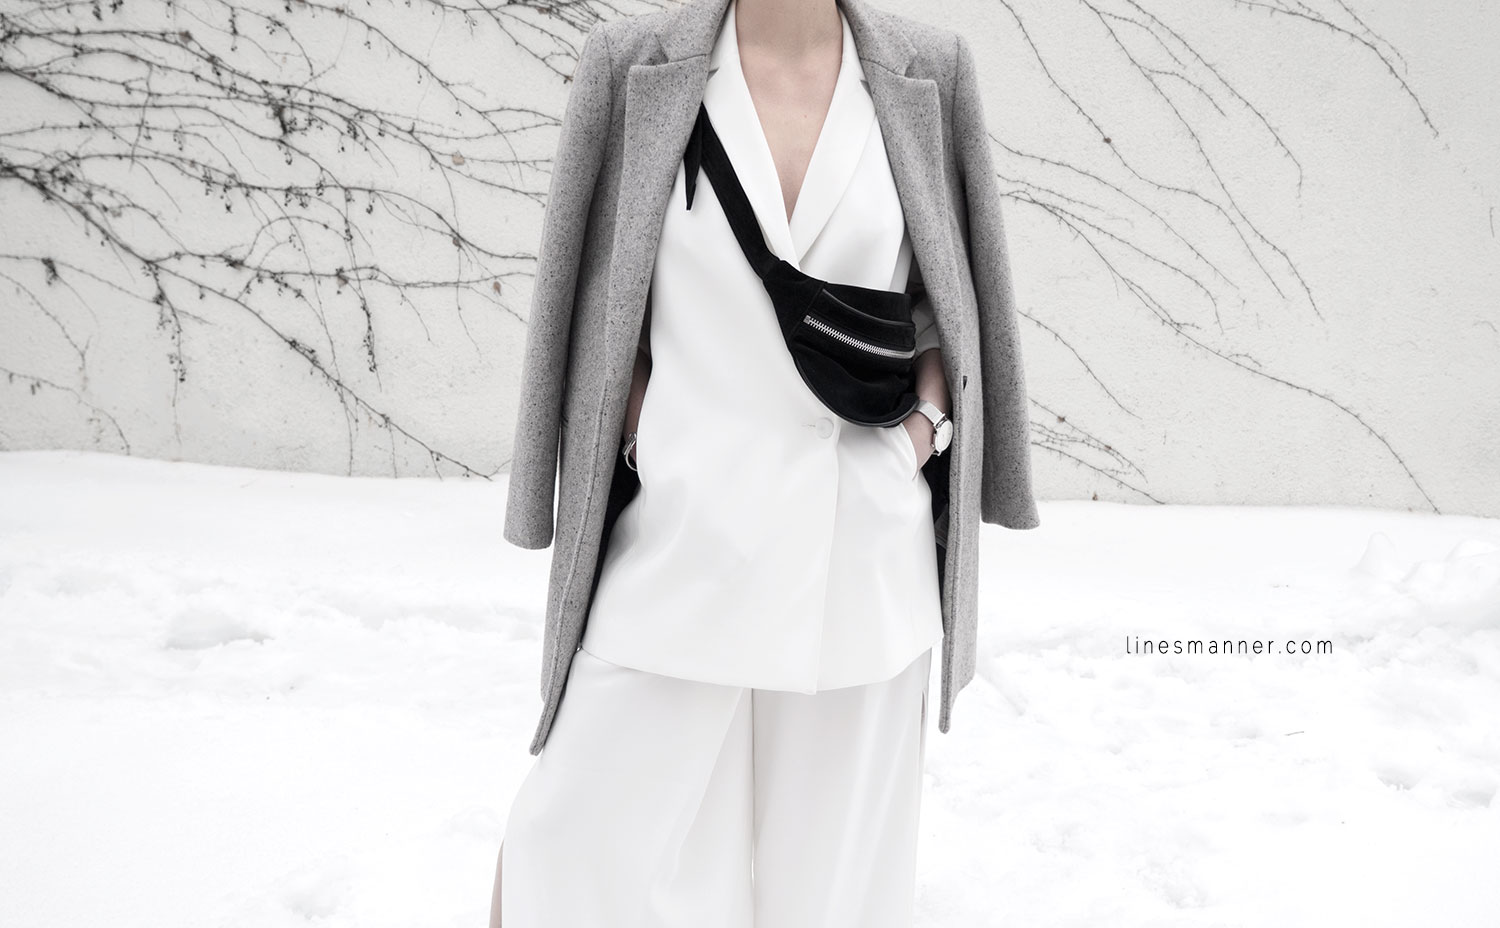 Lines-Manner-White_on_White-All_white-relaxed-shapes-tailored-blazer-pantsuit-clean-details-staples-essentials-sleek-LXE-box bag-light-fresh-slouchy-3